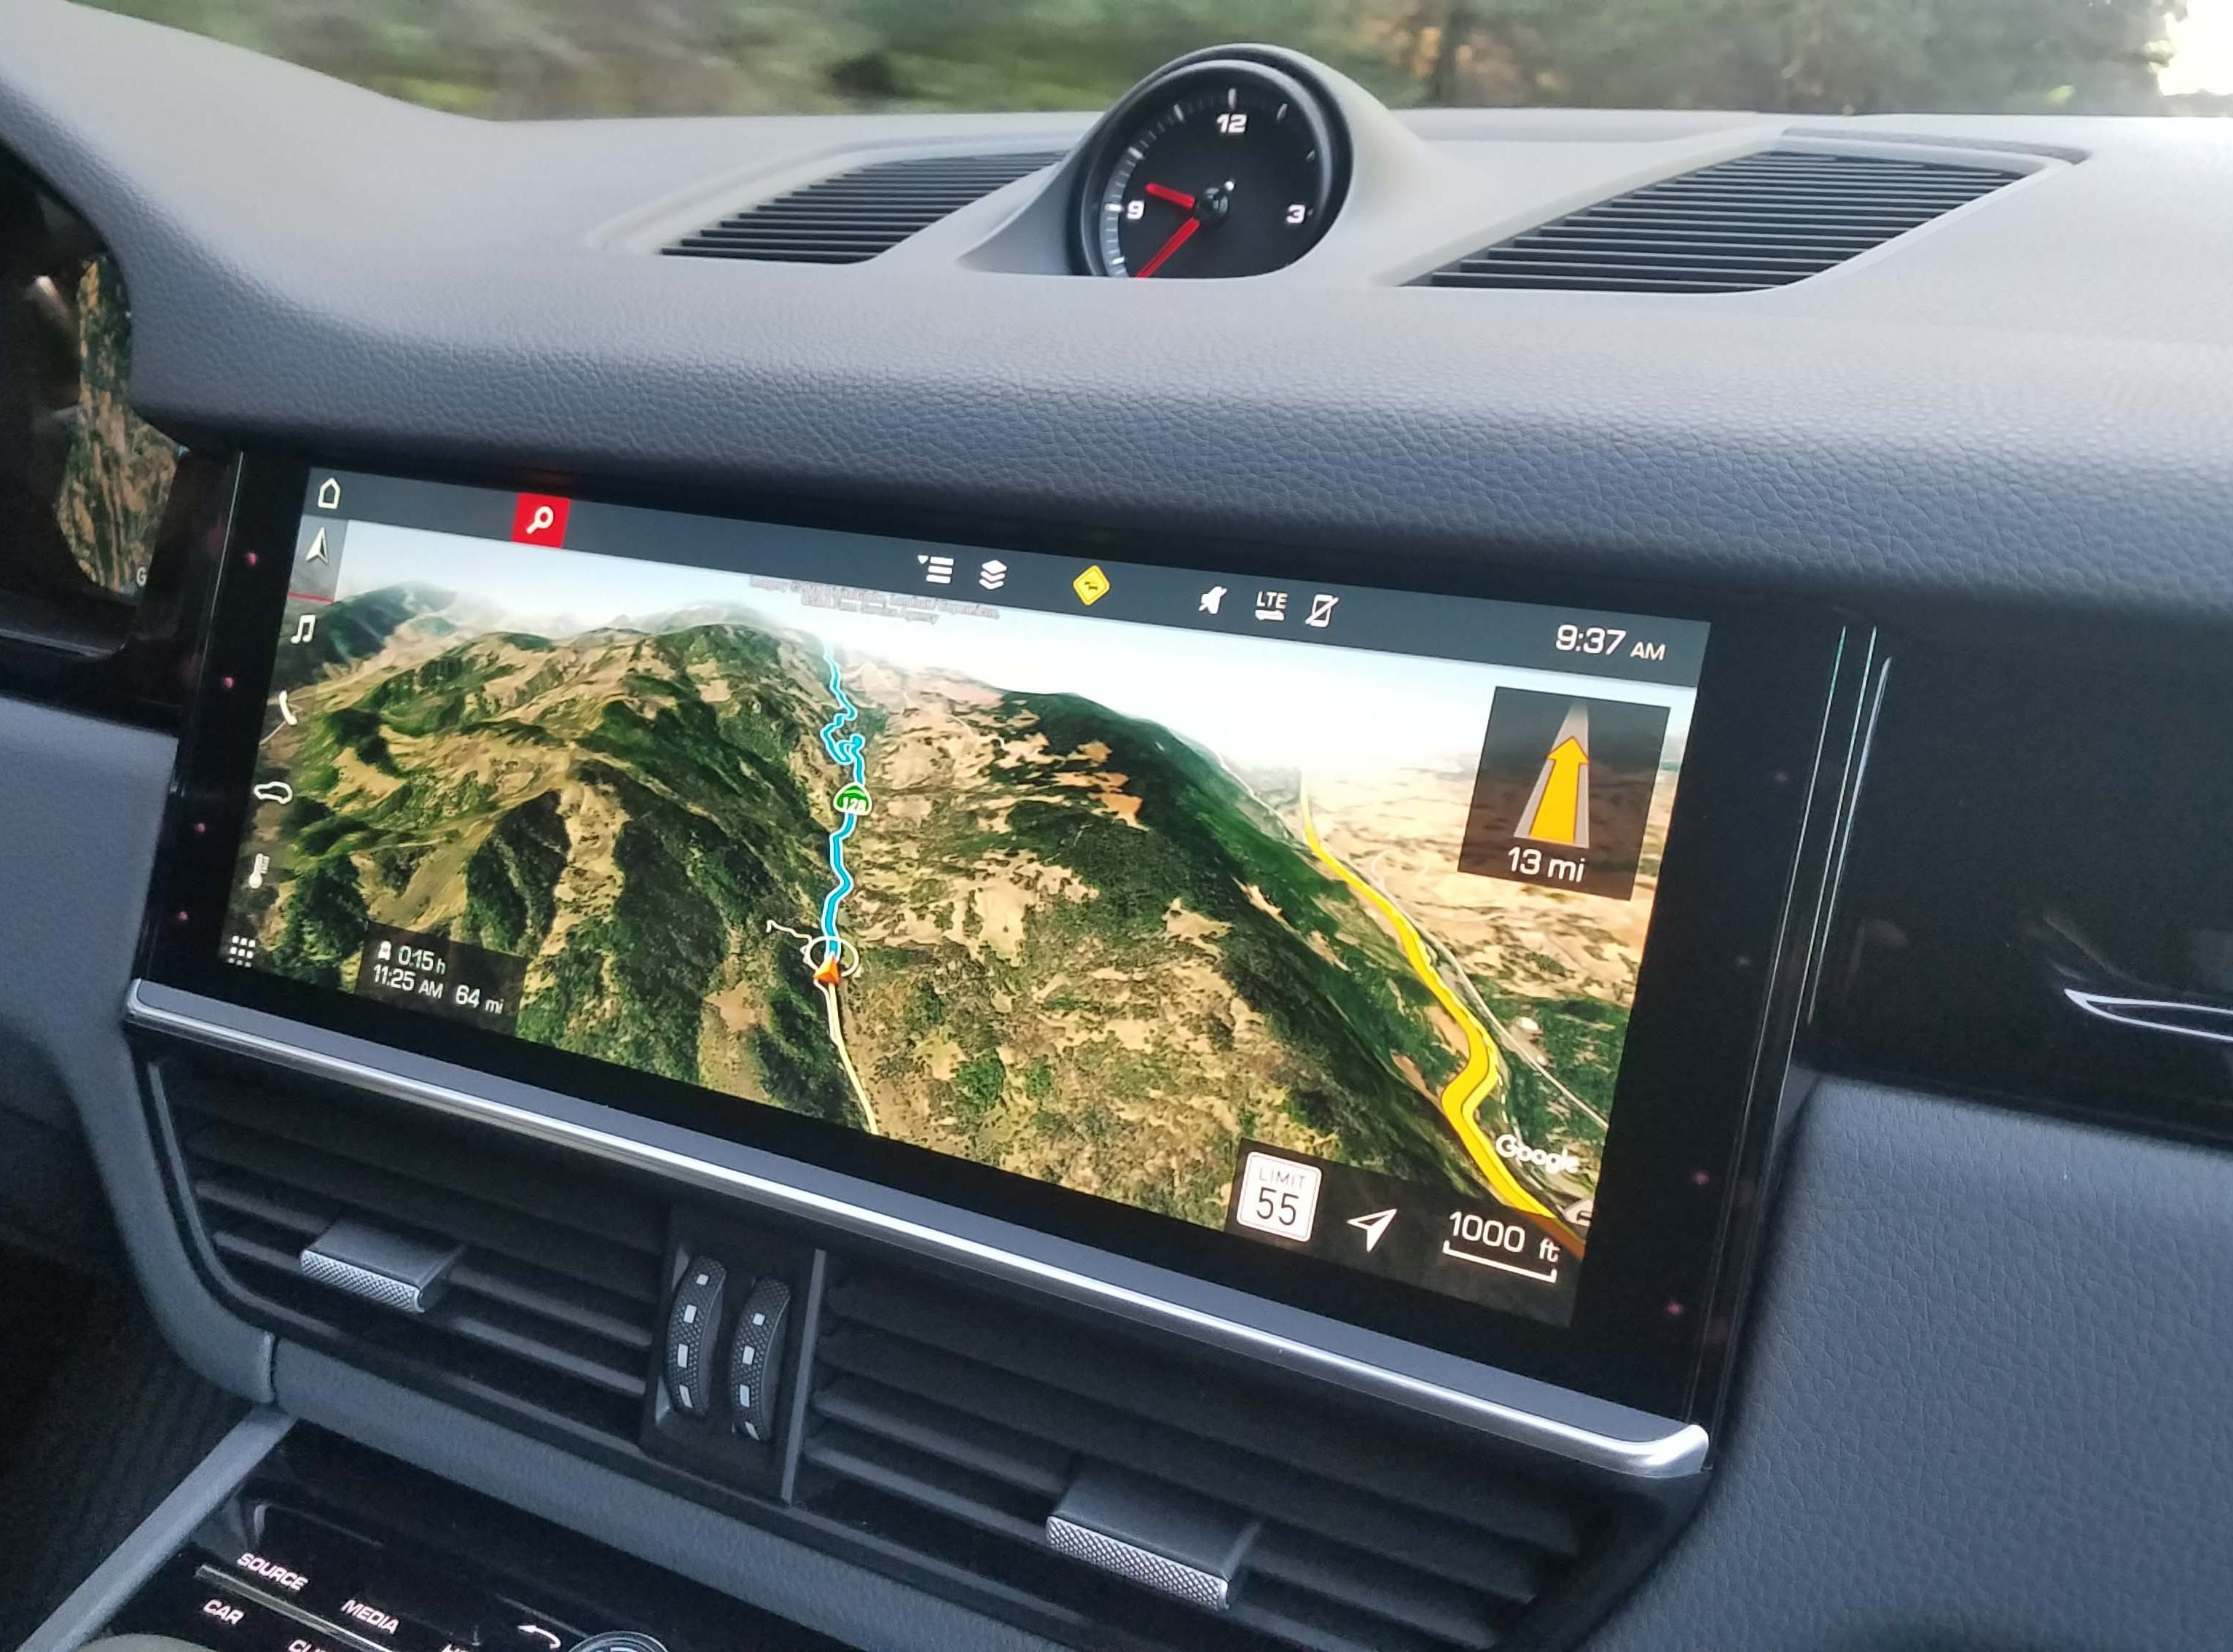 The 2019 Cayenne features a huge, 12.3-inch infotainment display with exquisite, high-definition graphics for Google Earth-detailed nav displays.